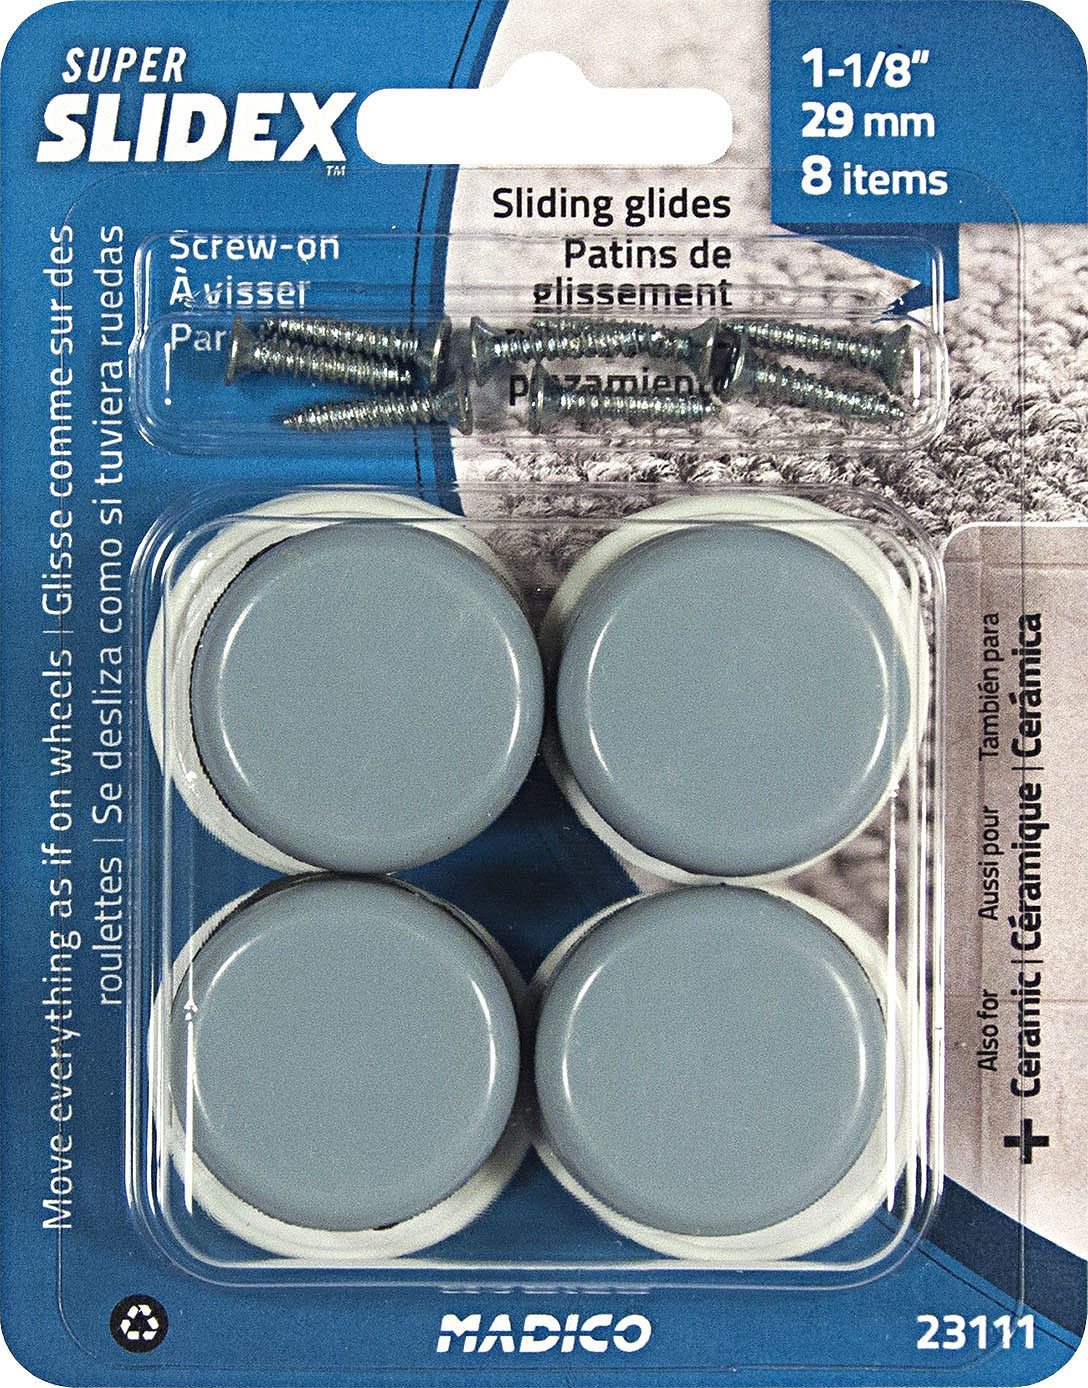 Richelieu Hardware - 23111 - Pack of 8 Units - Super SLIDEX Gray Round Ultra-Sliding Glides - - Amazon.com